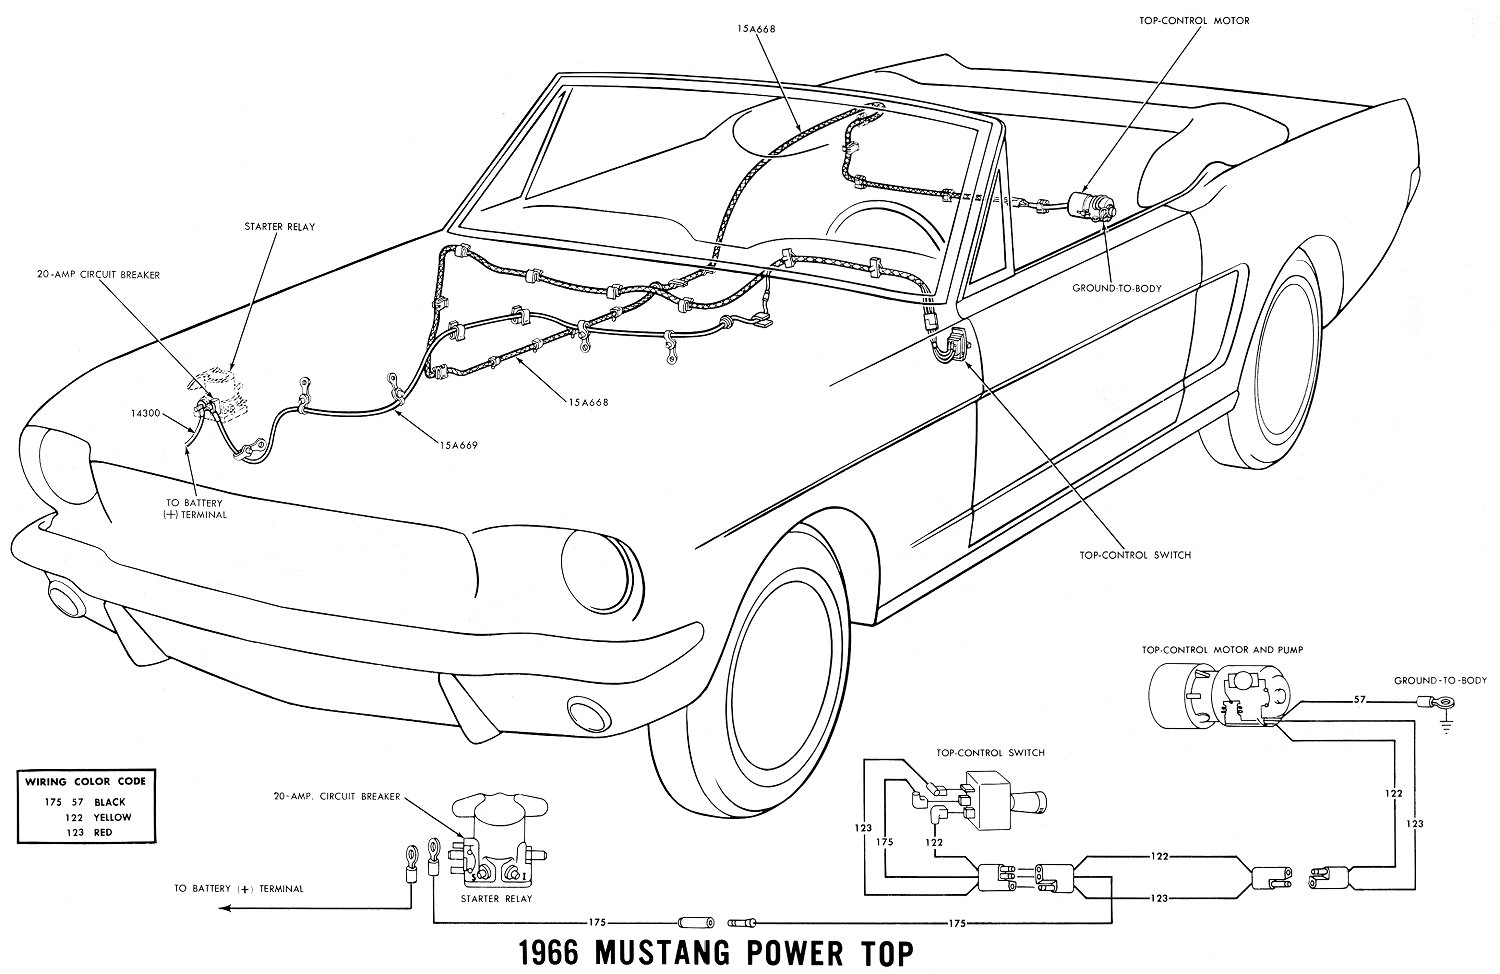 1966 mustang wiring diagrams average joe restoration rh averagejoerestoration com 1966 Mustang Color Wiring Diagram 1966 Mustang Headlight Wiring Diagram